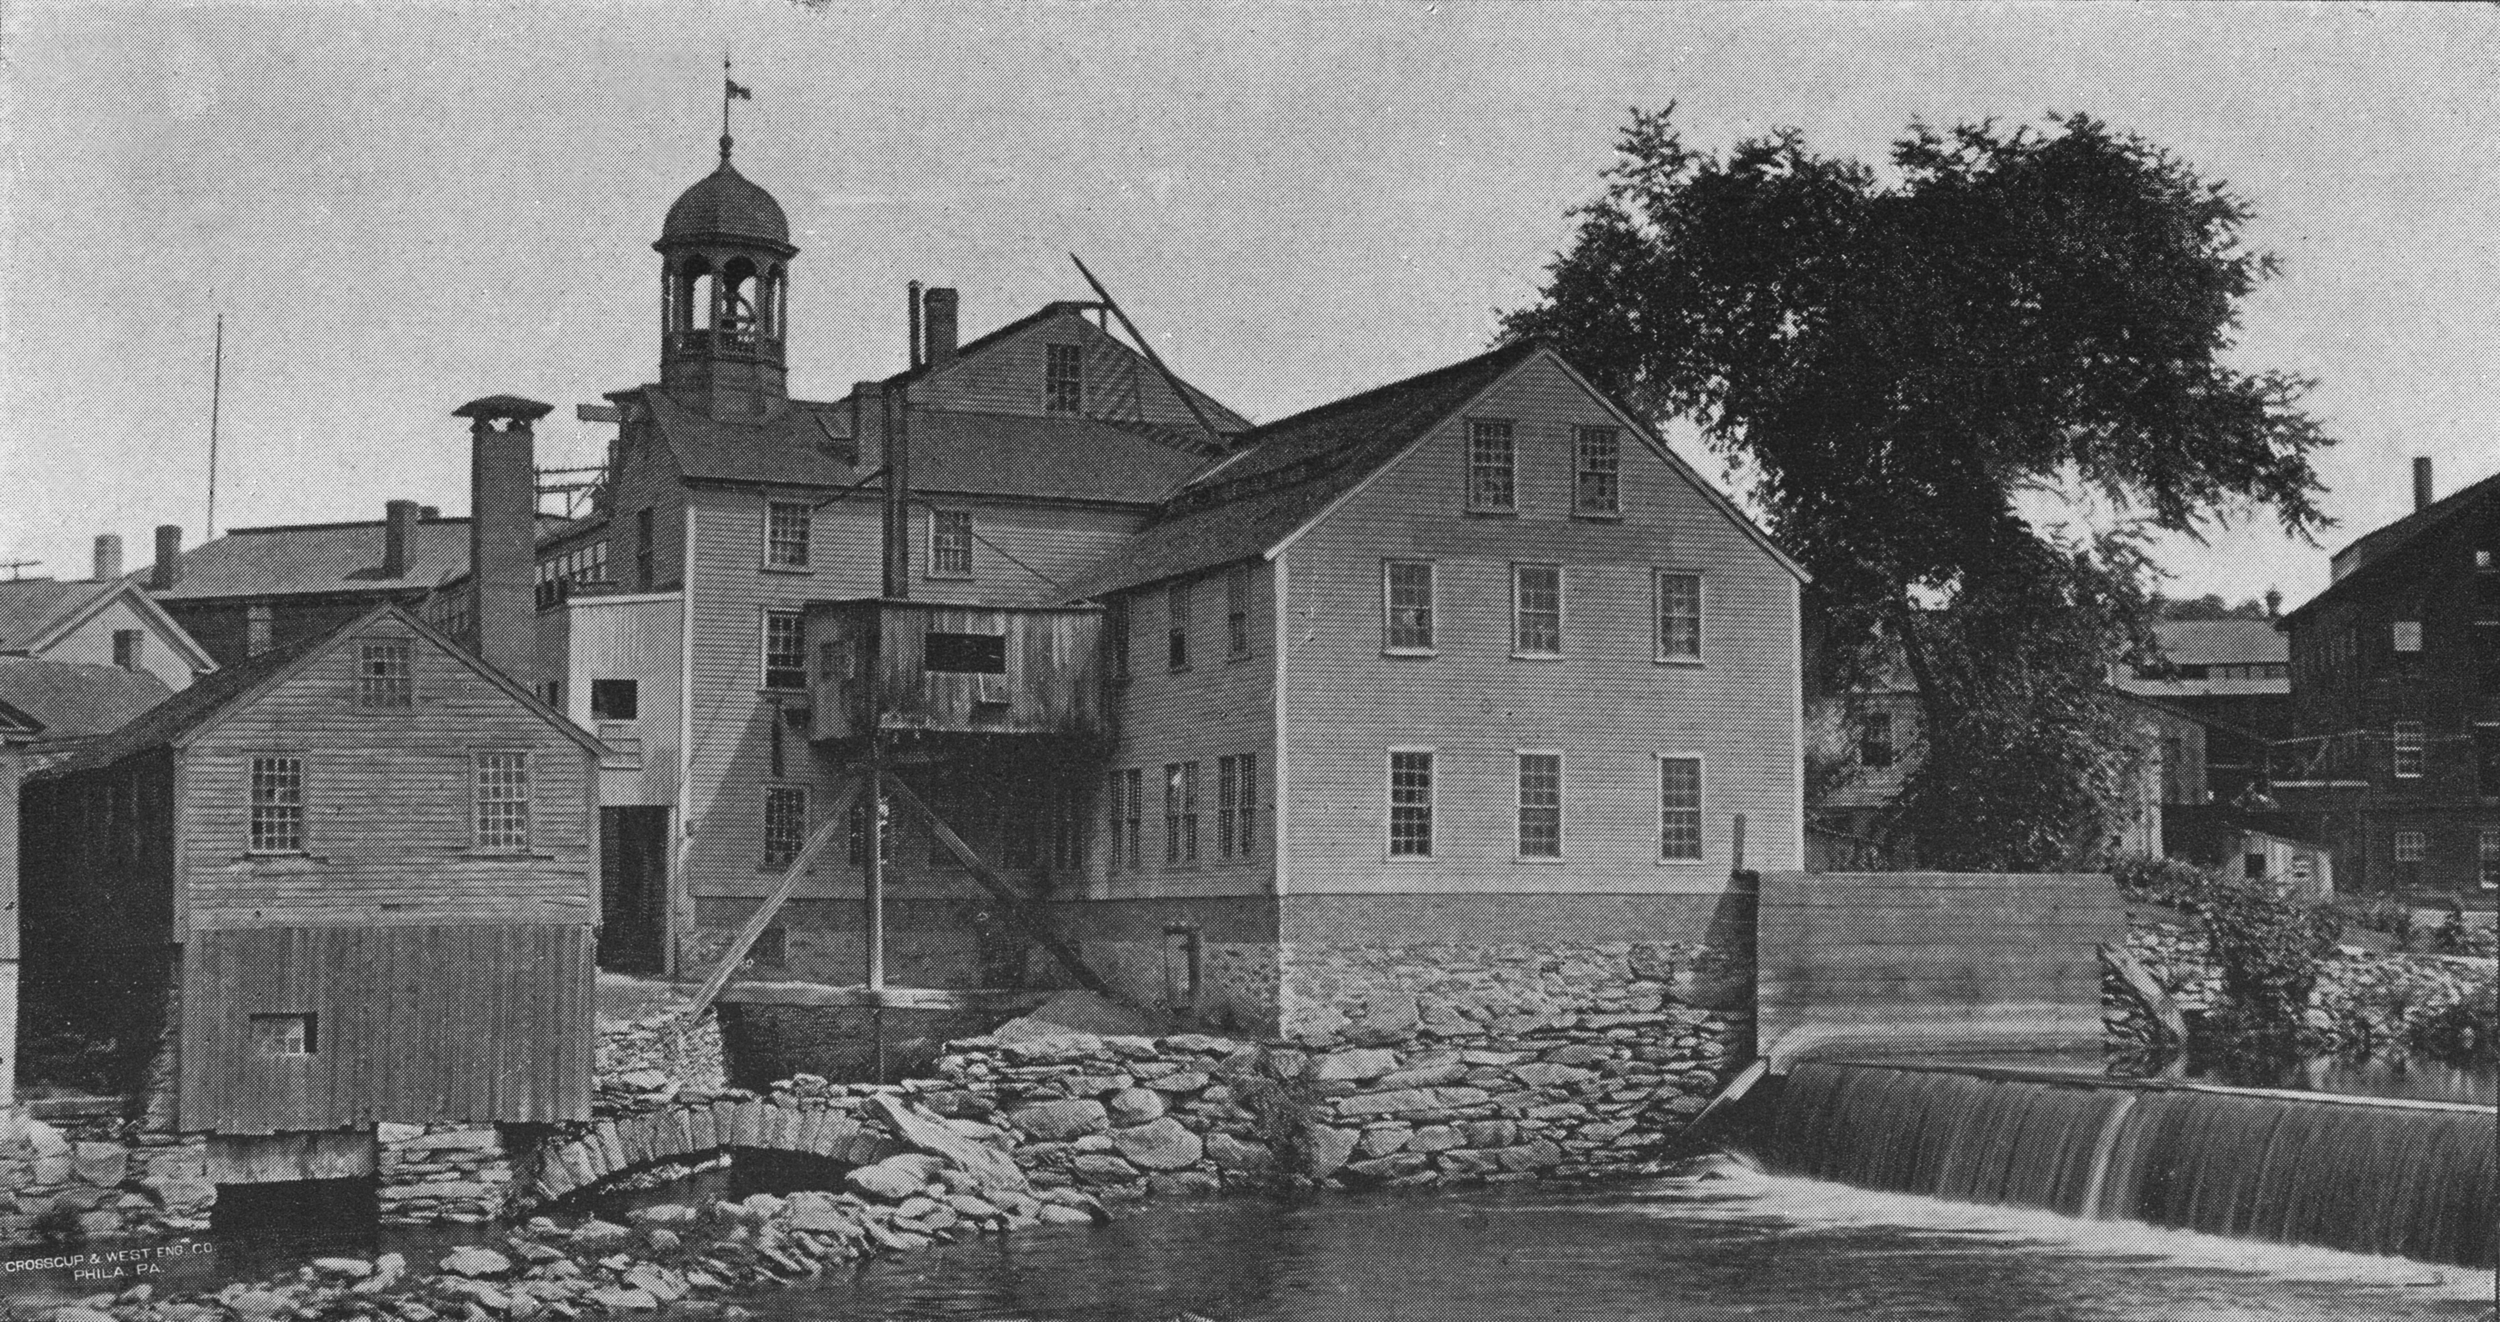 The Old Slater Mill in Pawtucket, Rhode Island, founded in 1793 by Samuel Slater (an entrepreneur) and Moses Brown (an industrialist and investor). Their partnership brought the Industrial Revolution to America, and their agreement (detailed in the book), contained many similar elements as modern-day venture capital term sheets.